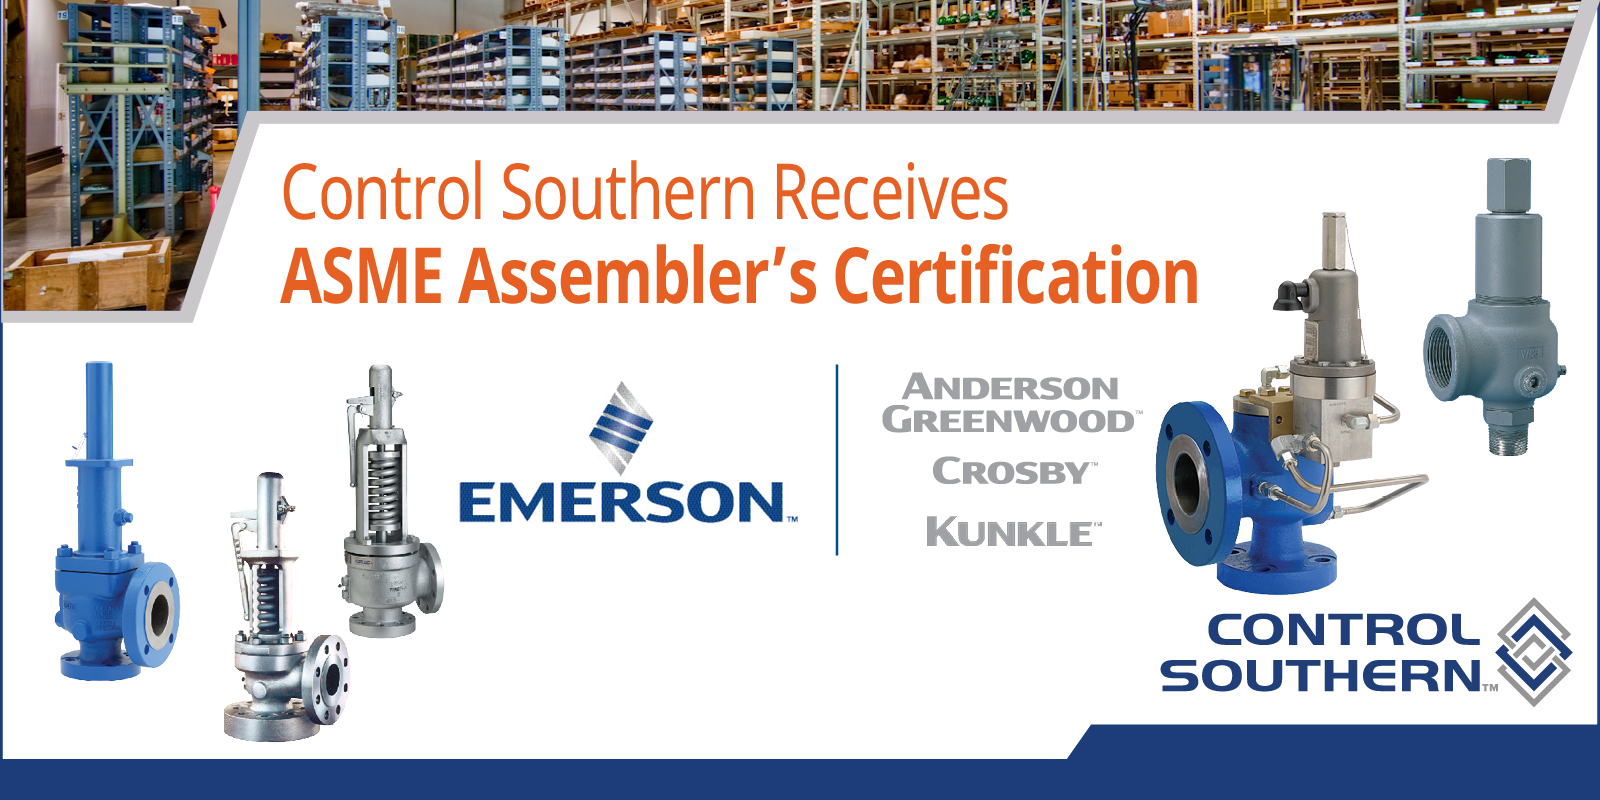 Control Southern Receives ASME Assembler's Certification for